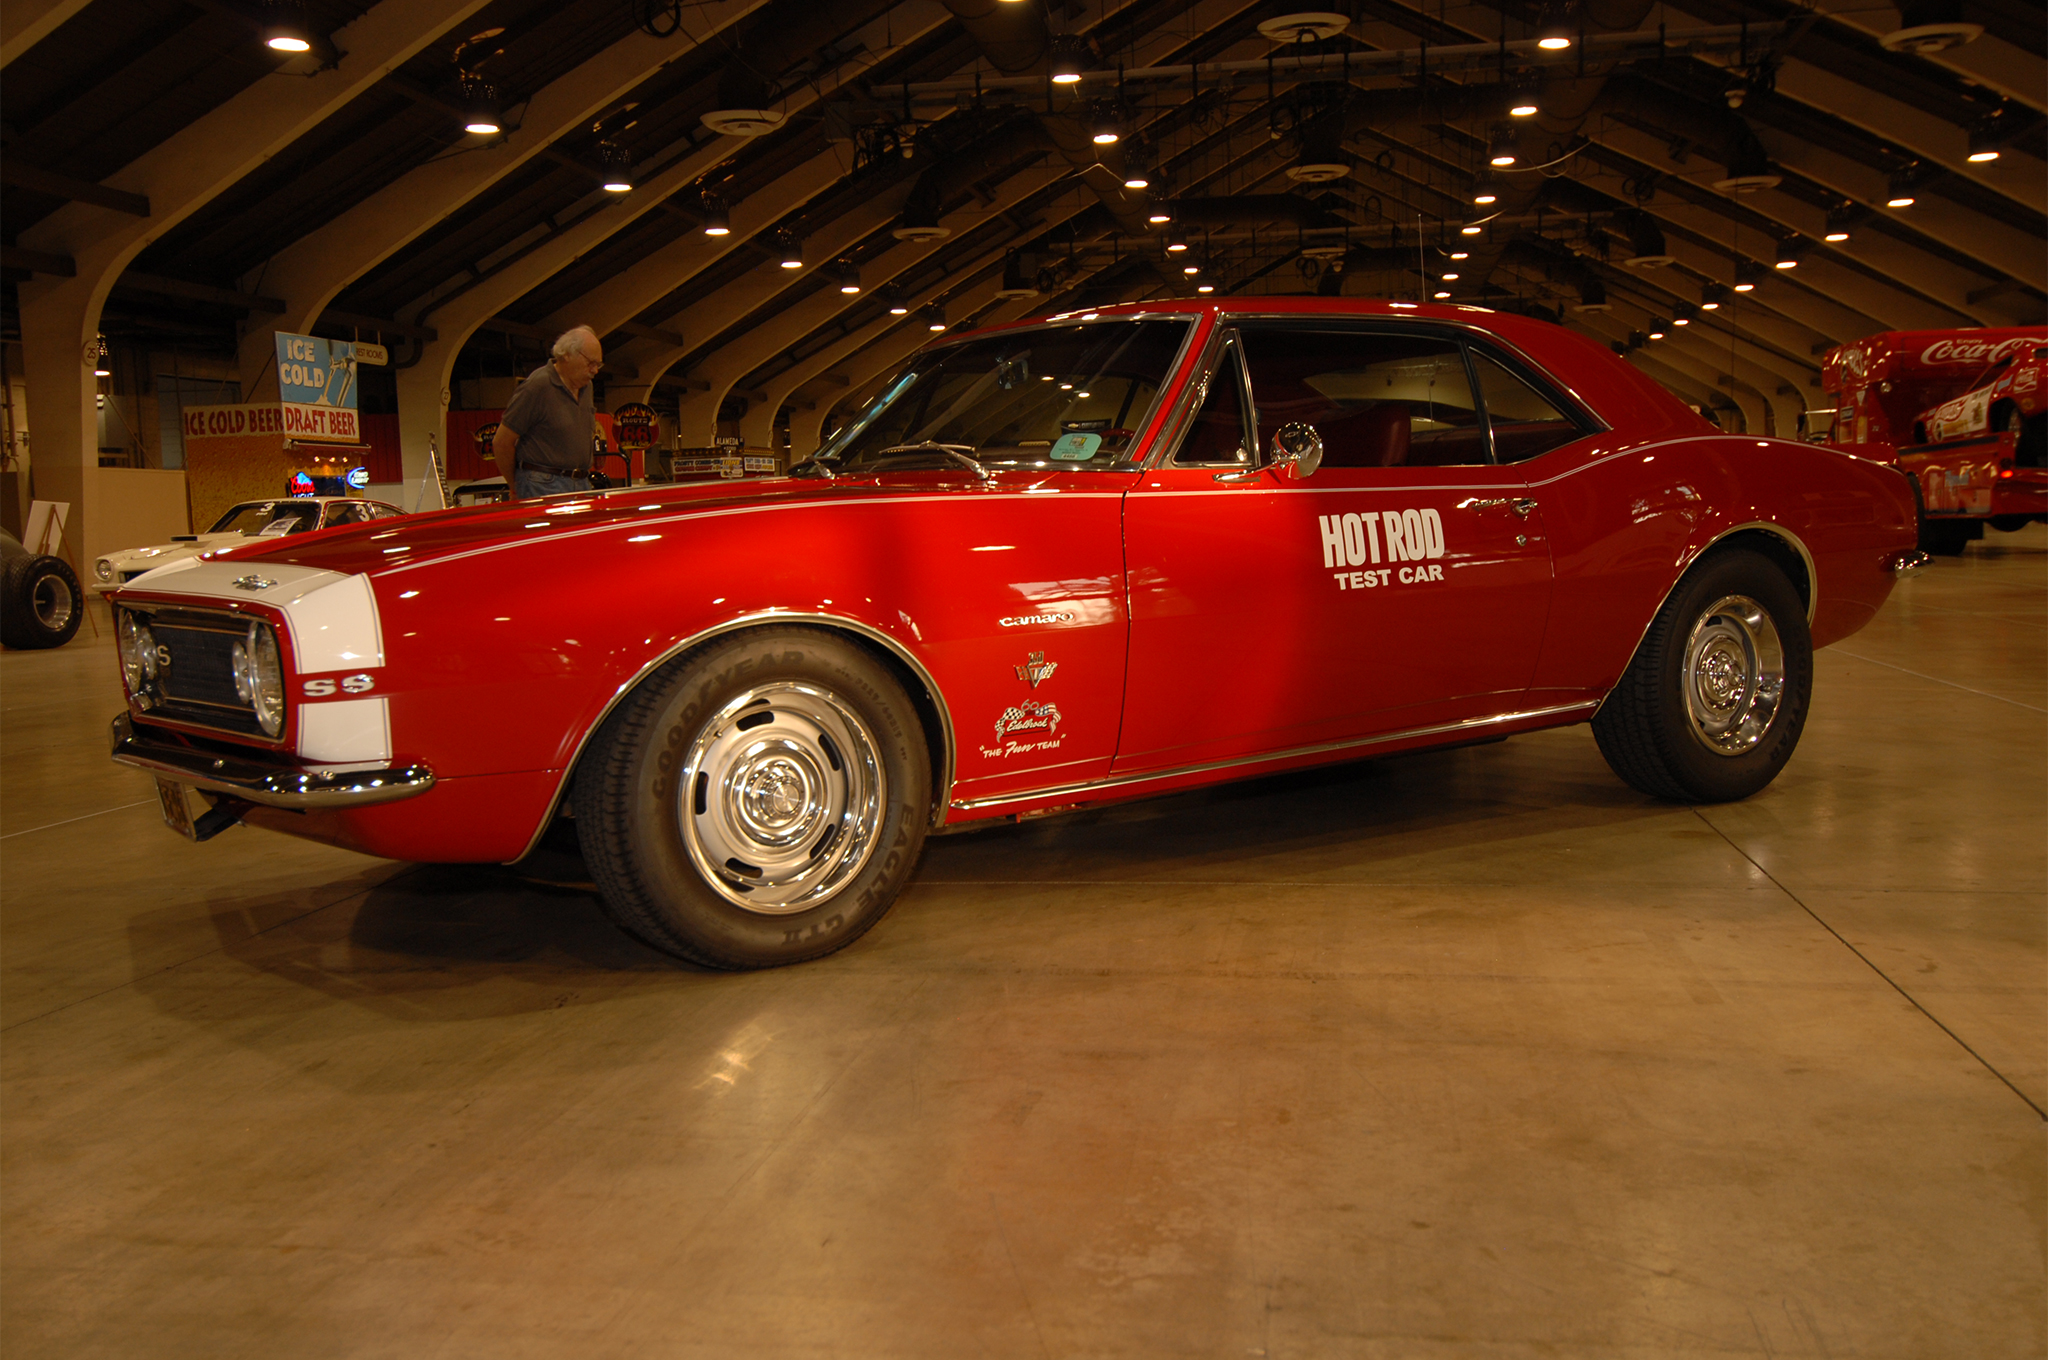 Twenty years ago, McFarland sold HRM's historic test car to Vic Edelbrock—with just 17,000 miles on the clock. Appropriately, Vic displayed the first SS350 ever built at the HOT ROD Homecoming in 2013.